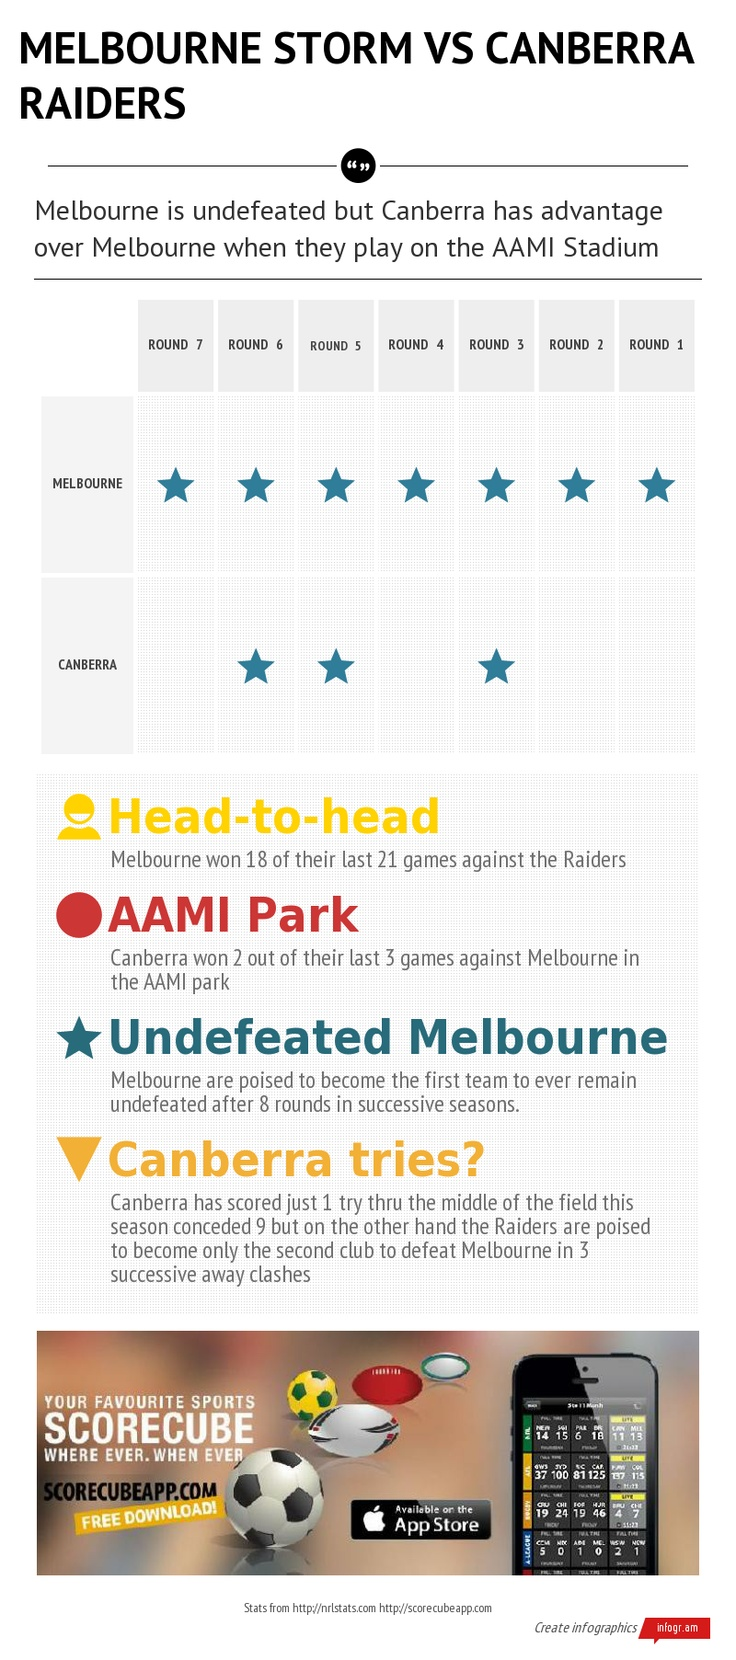 NRL - National Rugby League Preview of theMelbourne Storm vs Canberra Raiders game tomorrow 4 May 2013.Download the ScoreCube app to be updated on scores, stats and local schedule of the NRL games.http://scorecubeapp.com/  Download the app here: itunes download link  Follow us on Twitter: @scorecubeapp  We are also on Facebook:  https://www.facebook.com/scorecube